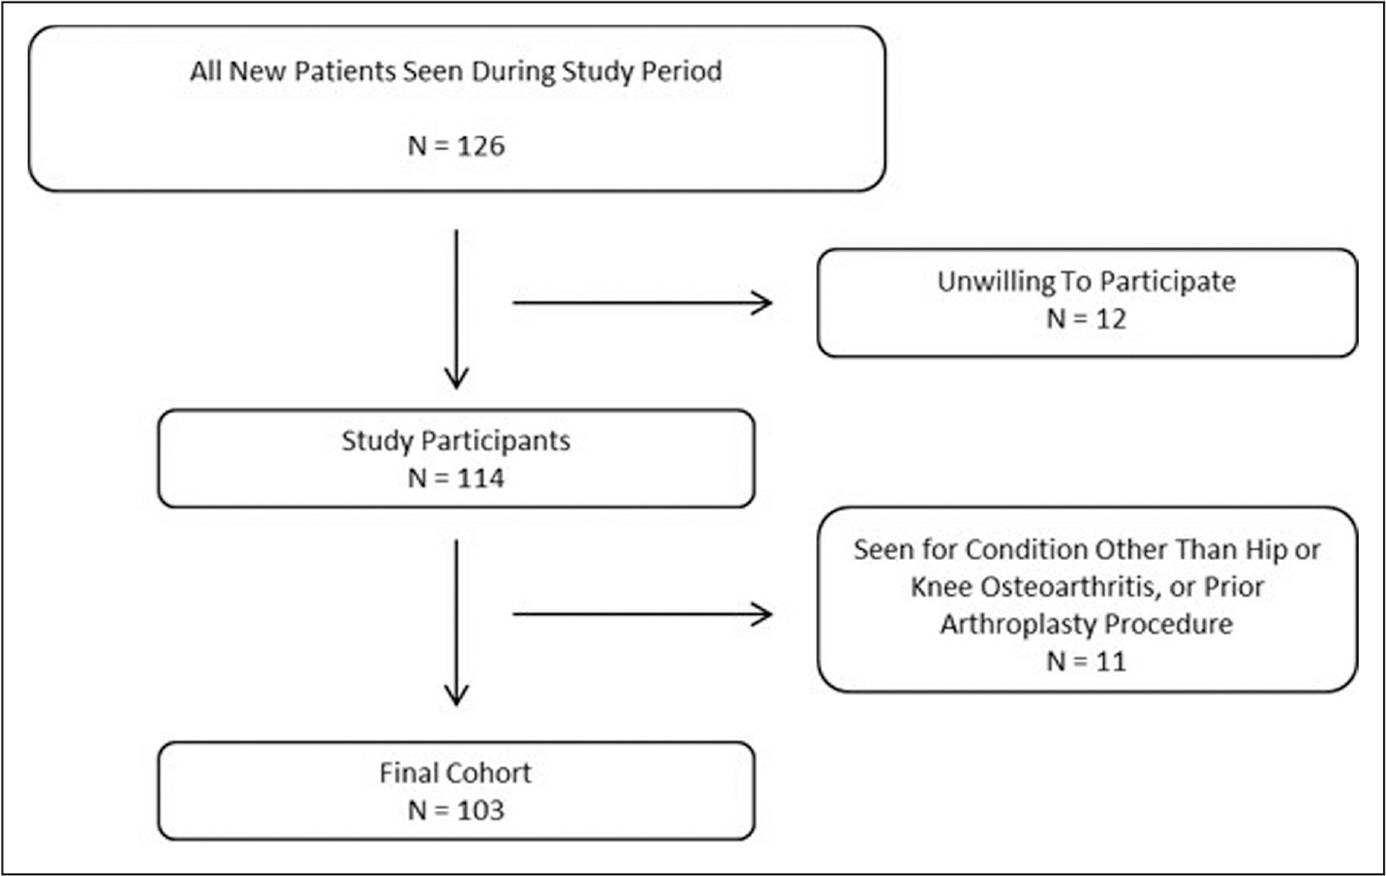 Flow diagram of patients included in the study.